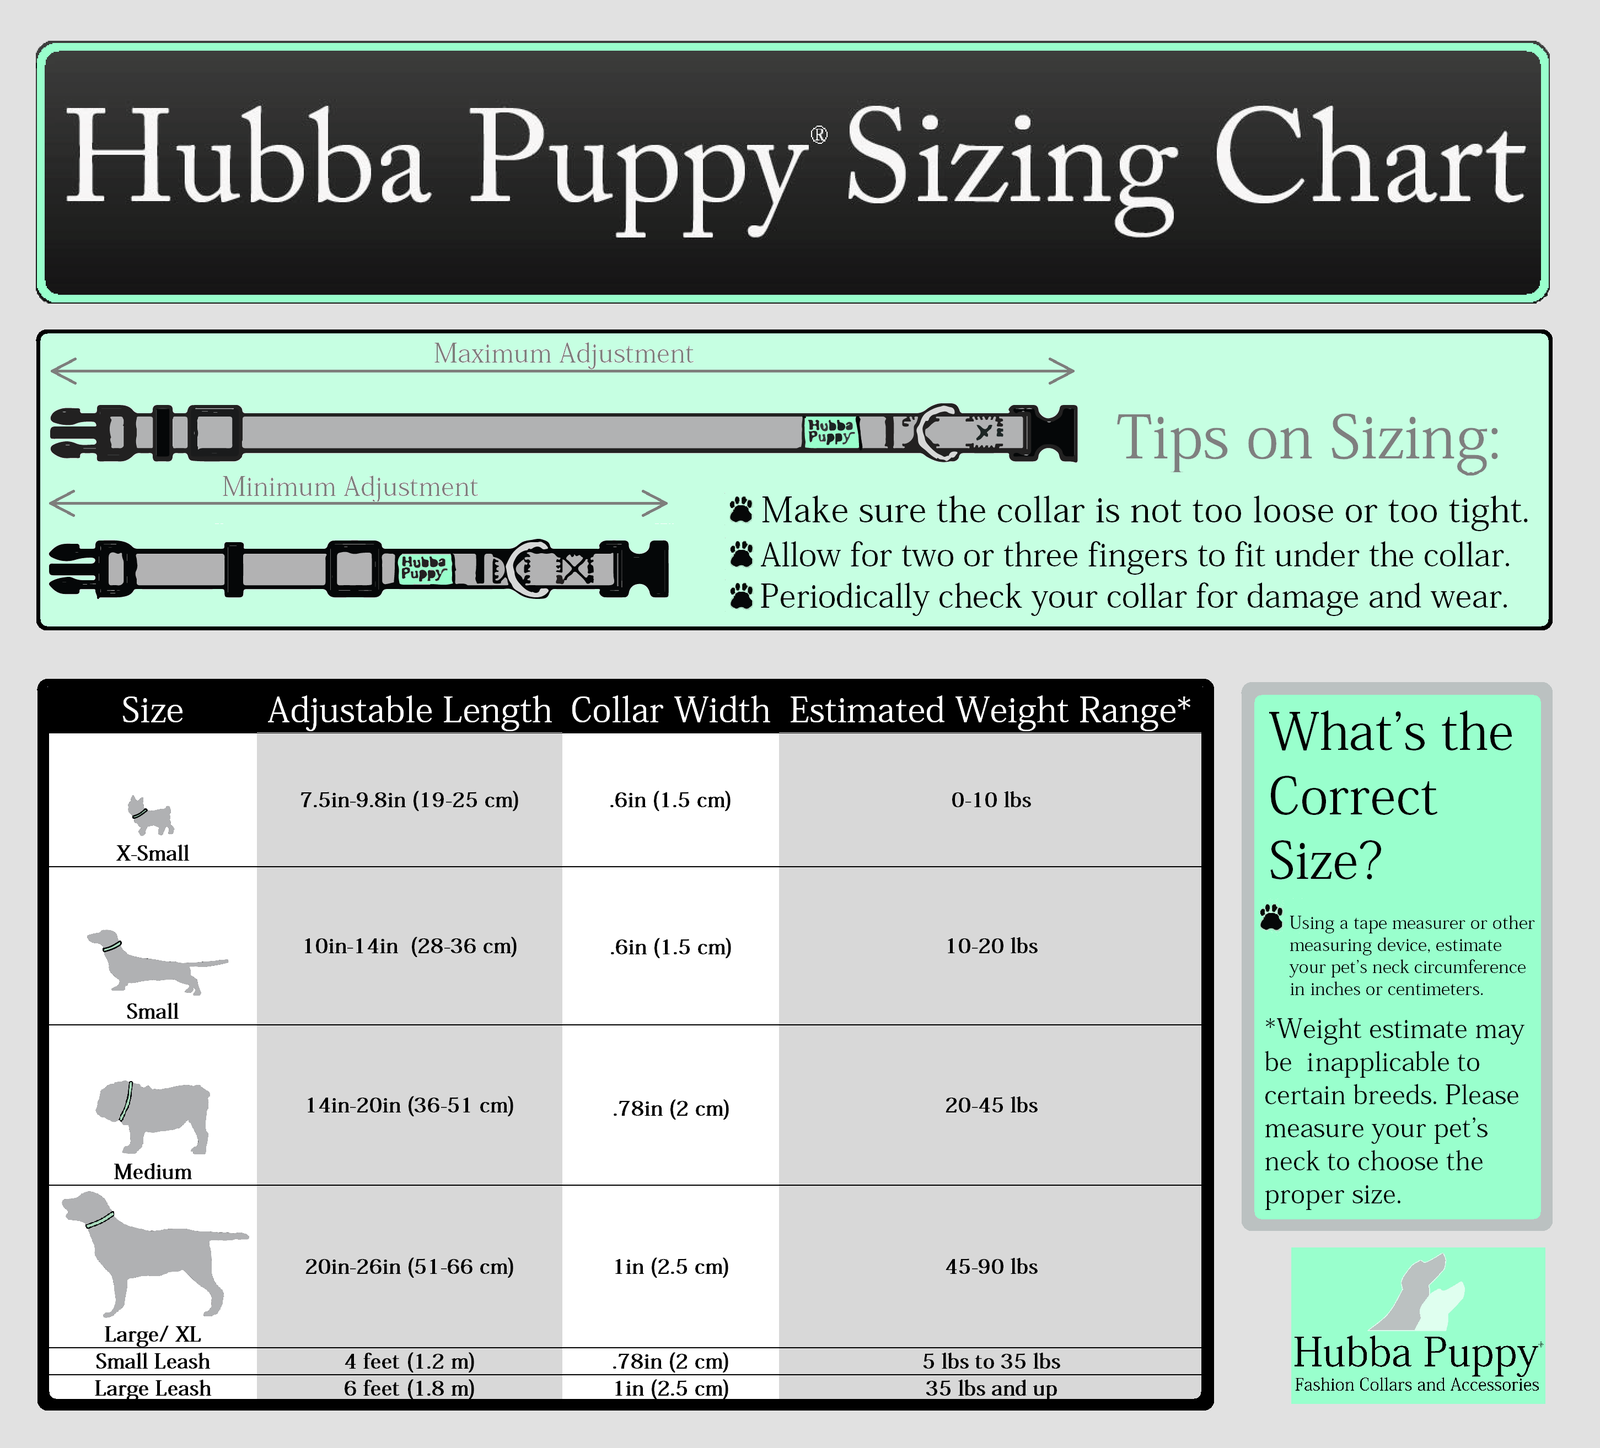 Hubba Puppy Pet Collars